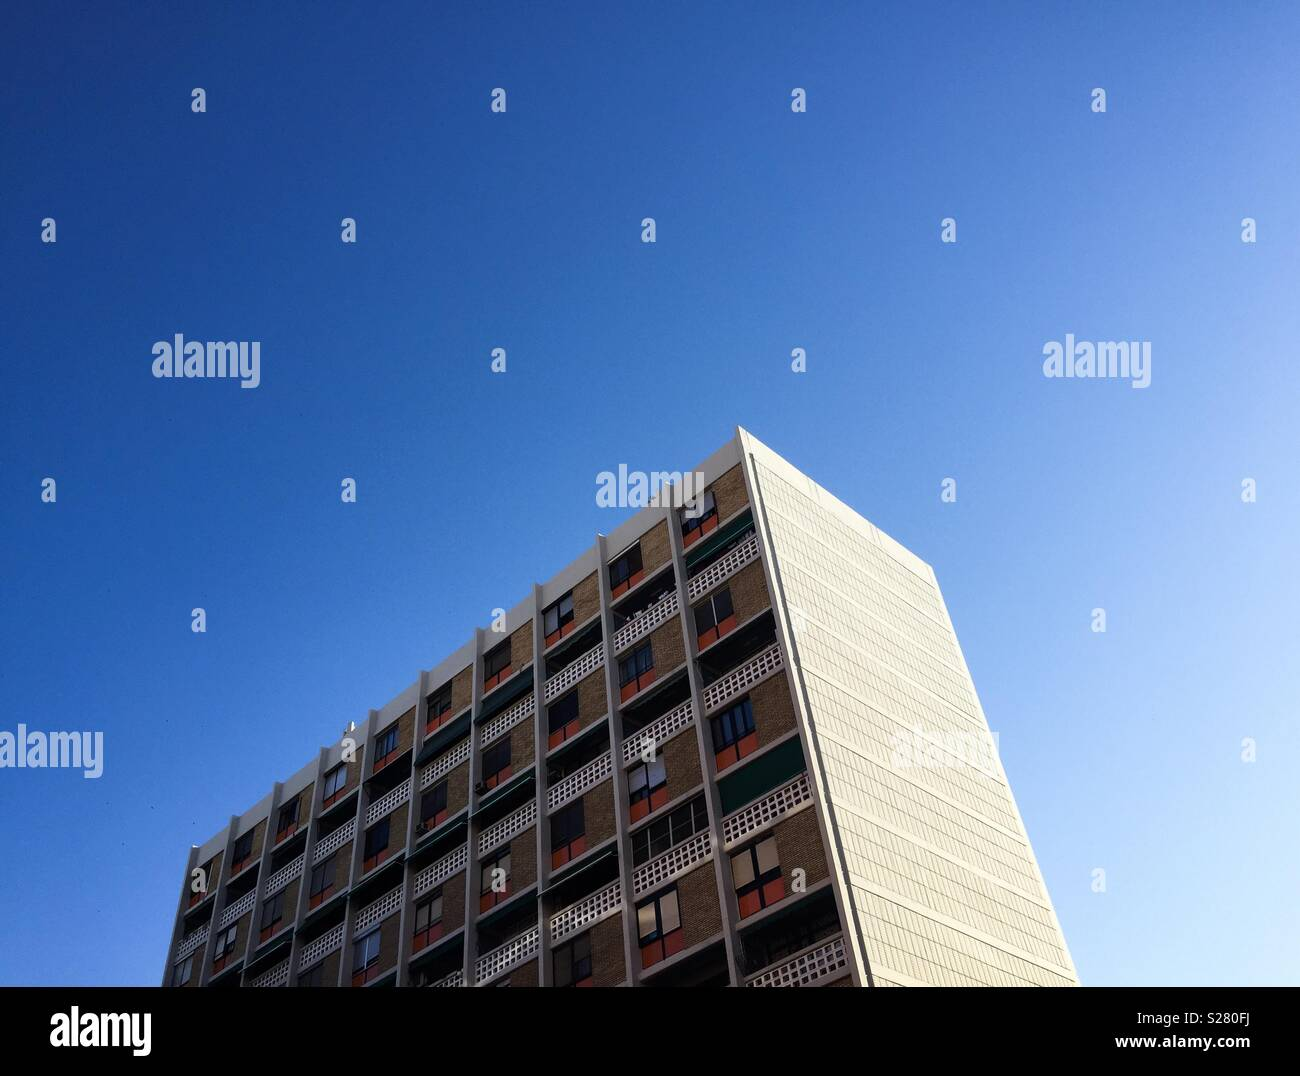 High building and blue sky - Stock Image